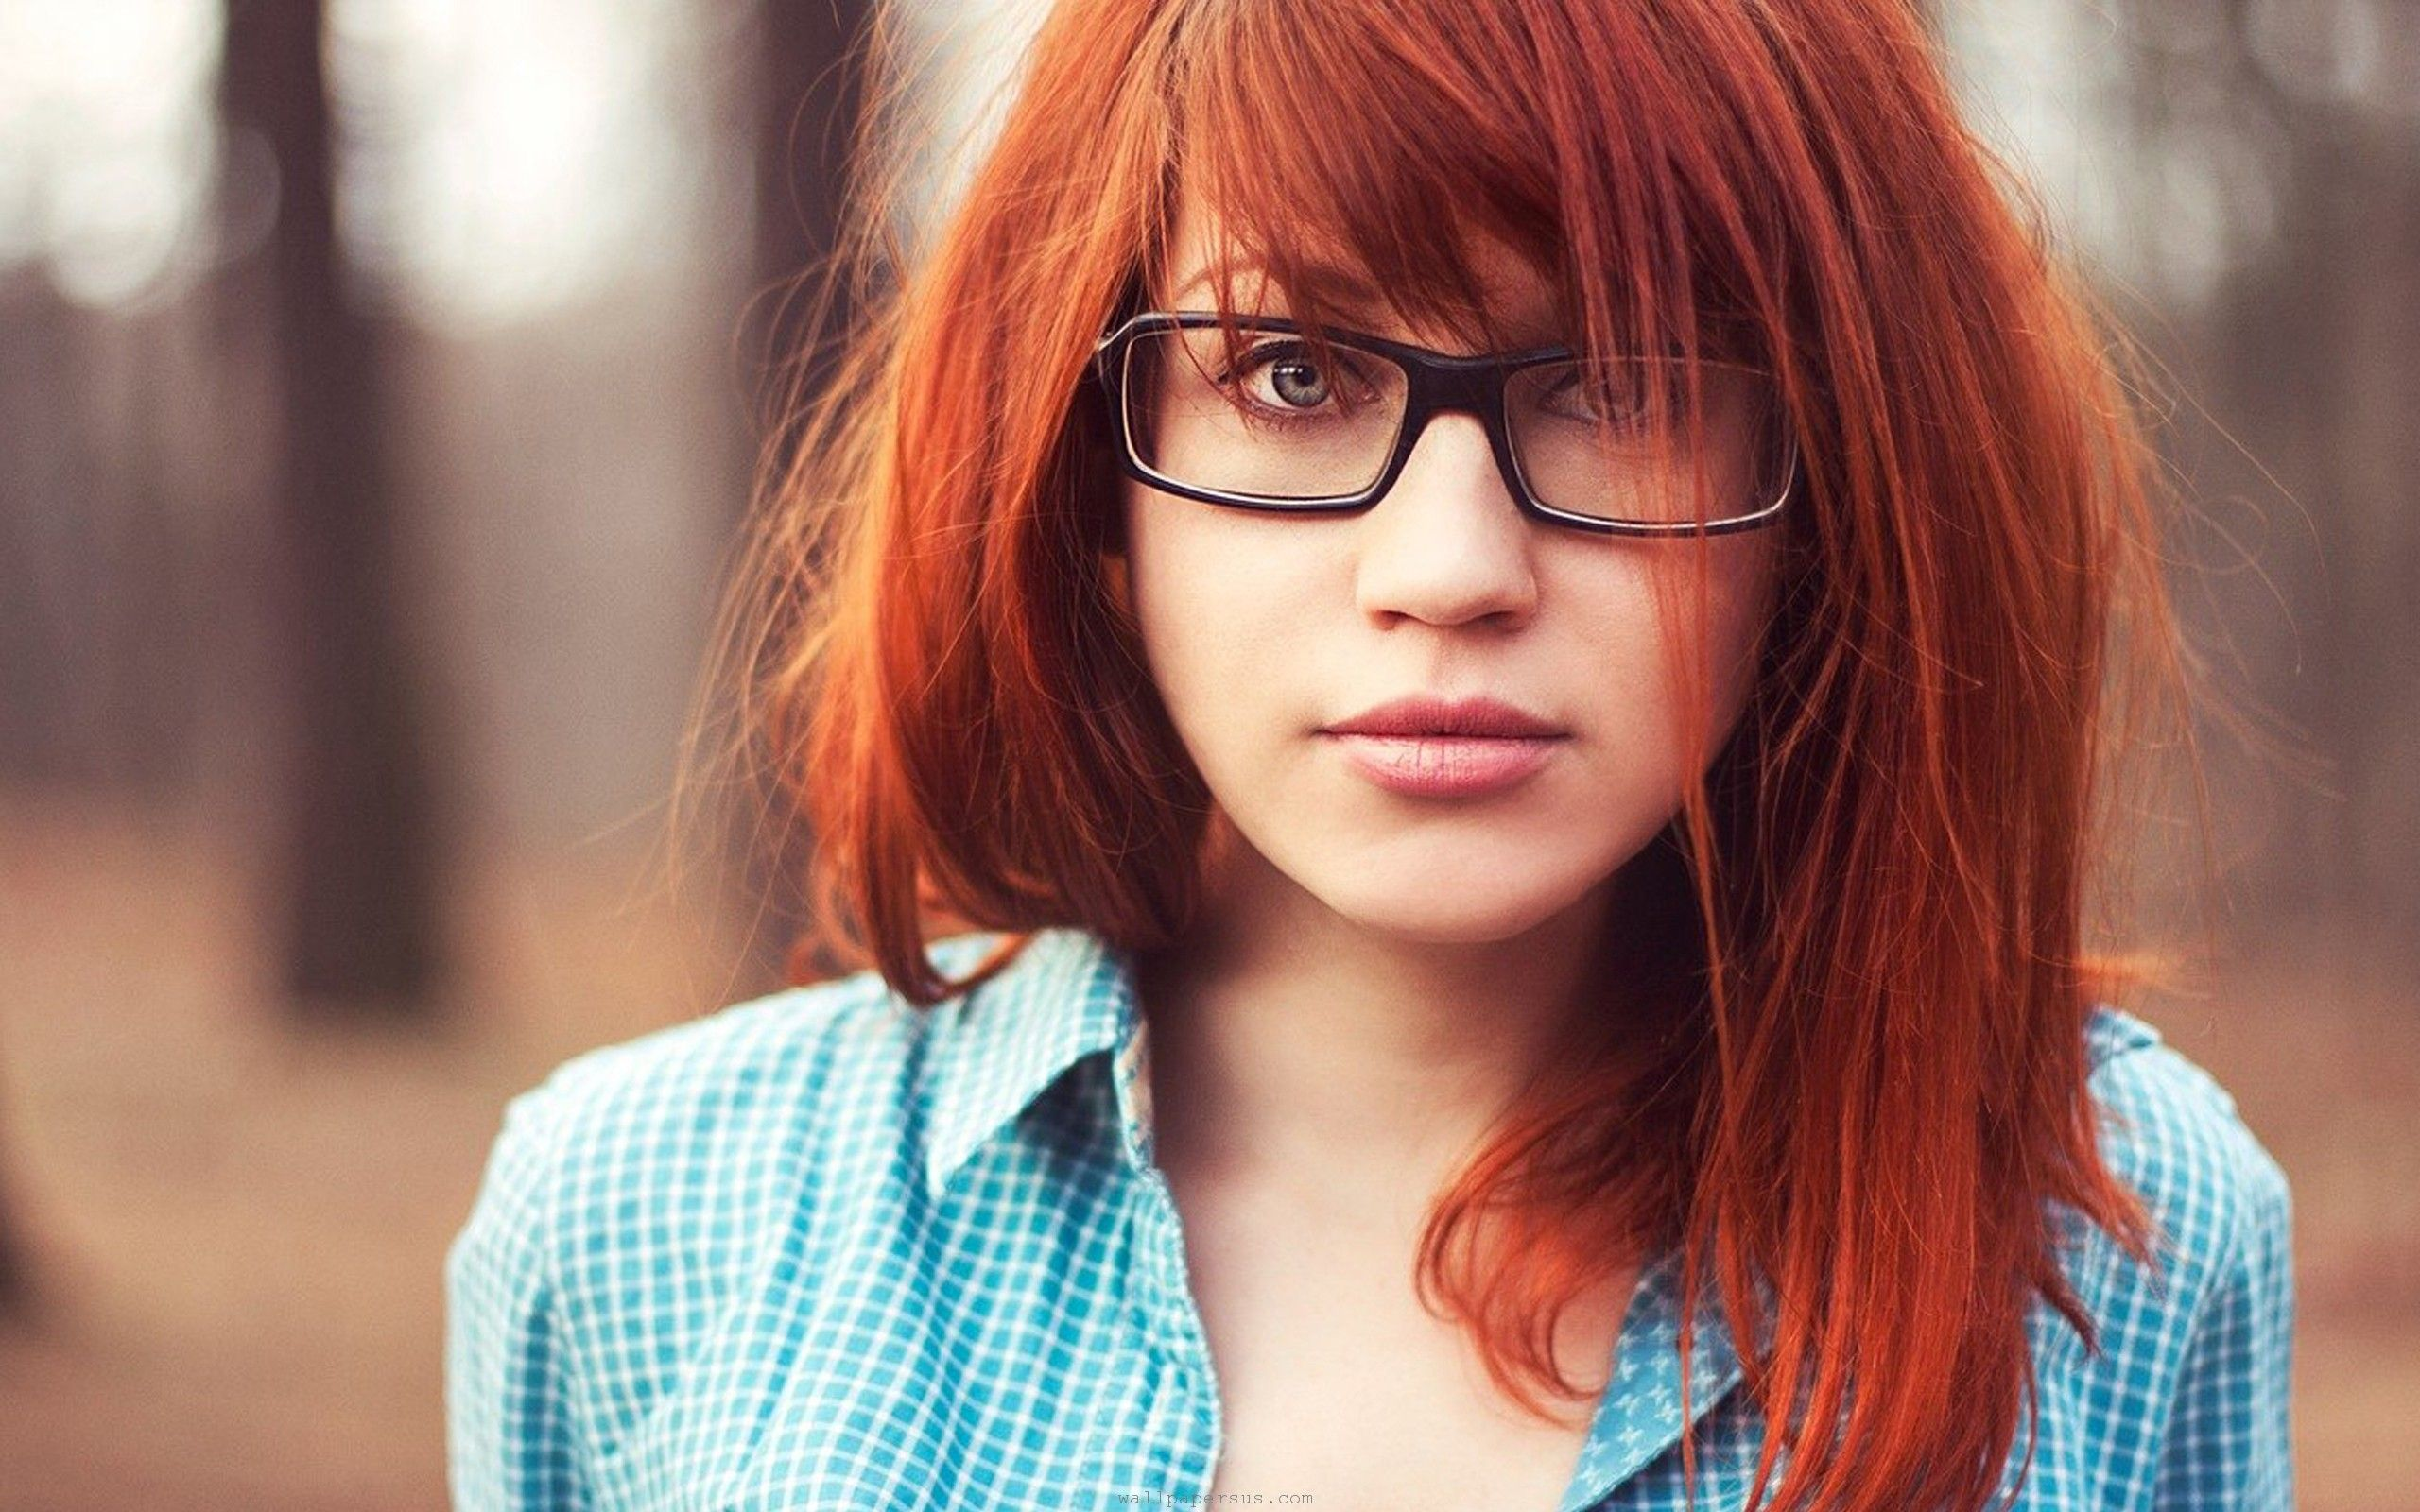 Pin On Girls With Glasses